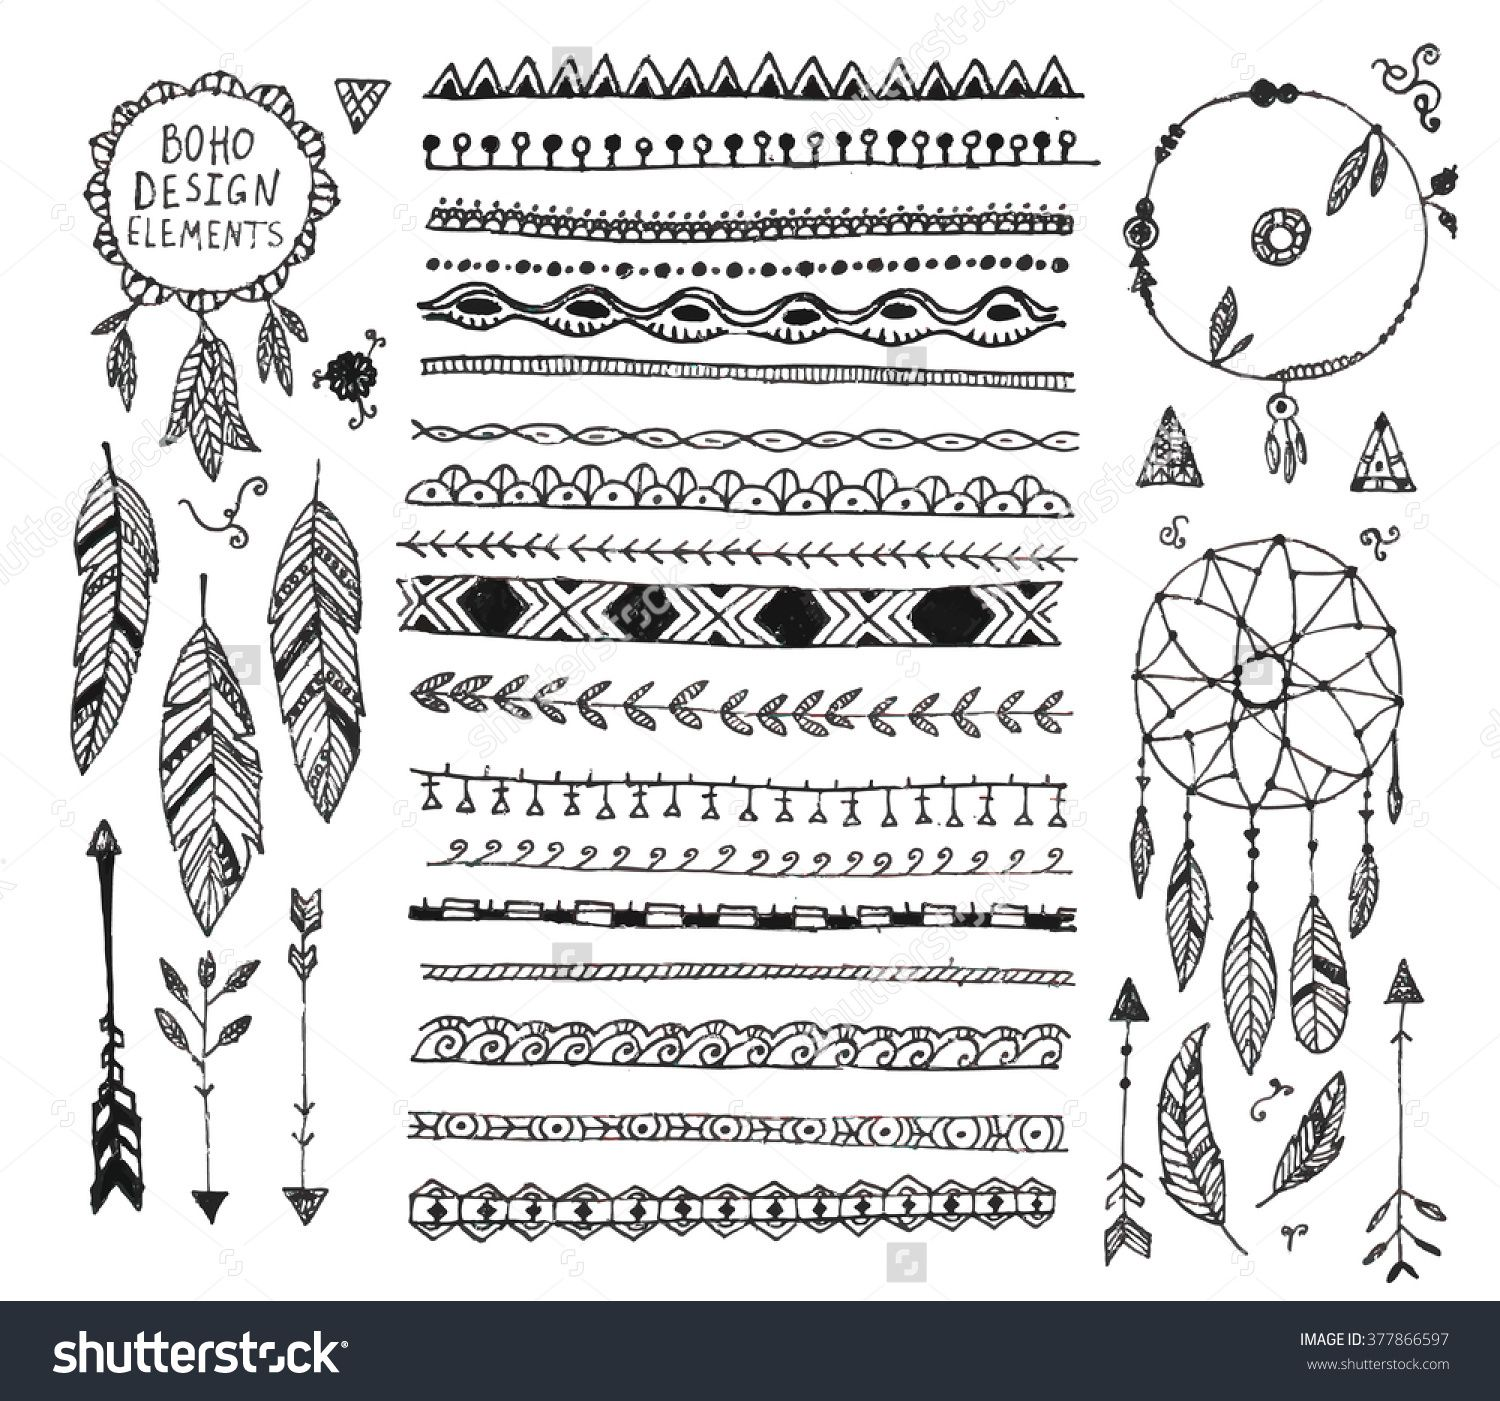 Bohemian Grpahics Ornaments Doodle Borders How To Draw Hands Boho Drawing